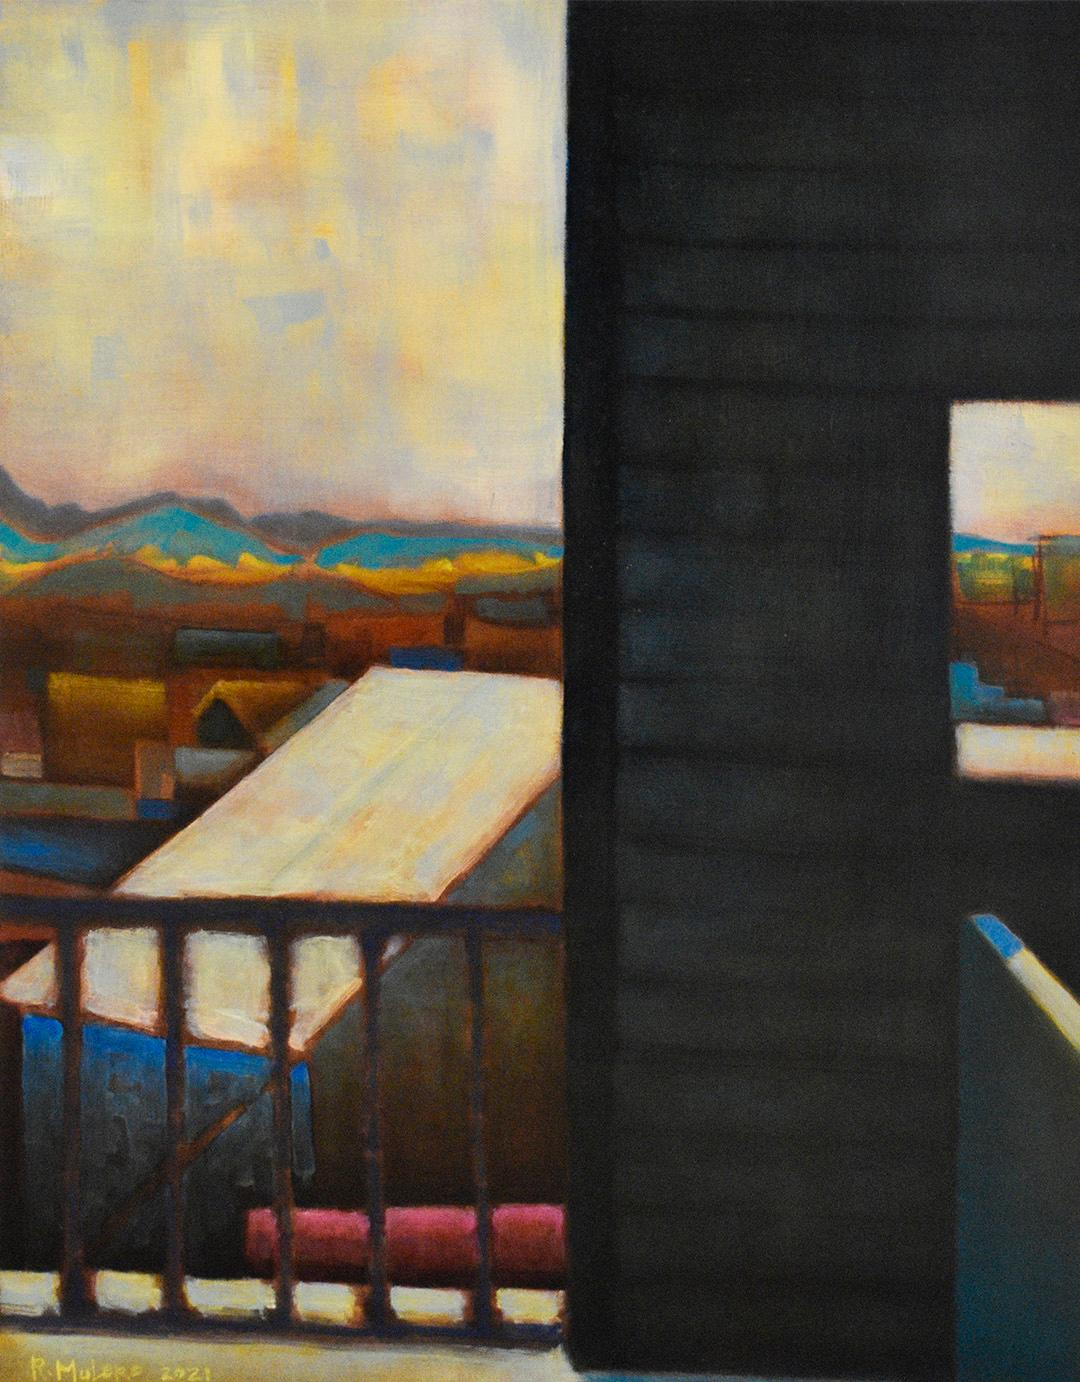 The Back Stairs: Abstract Landscape Painting of City Rooftops in Teal & Magenta